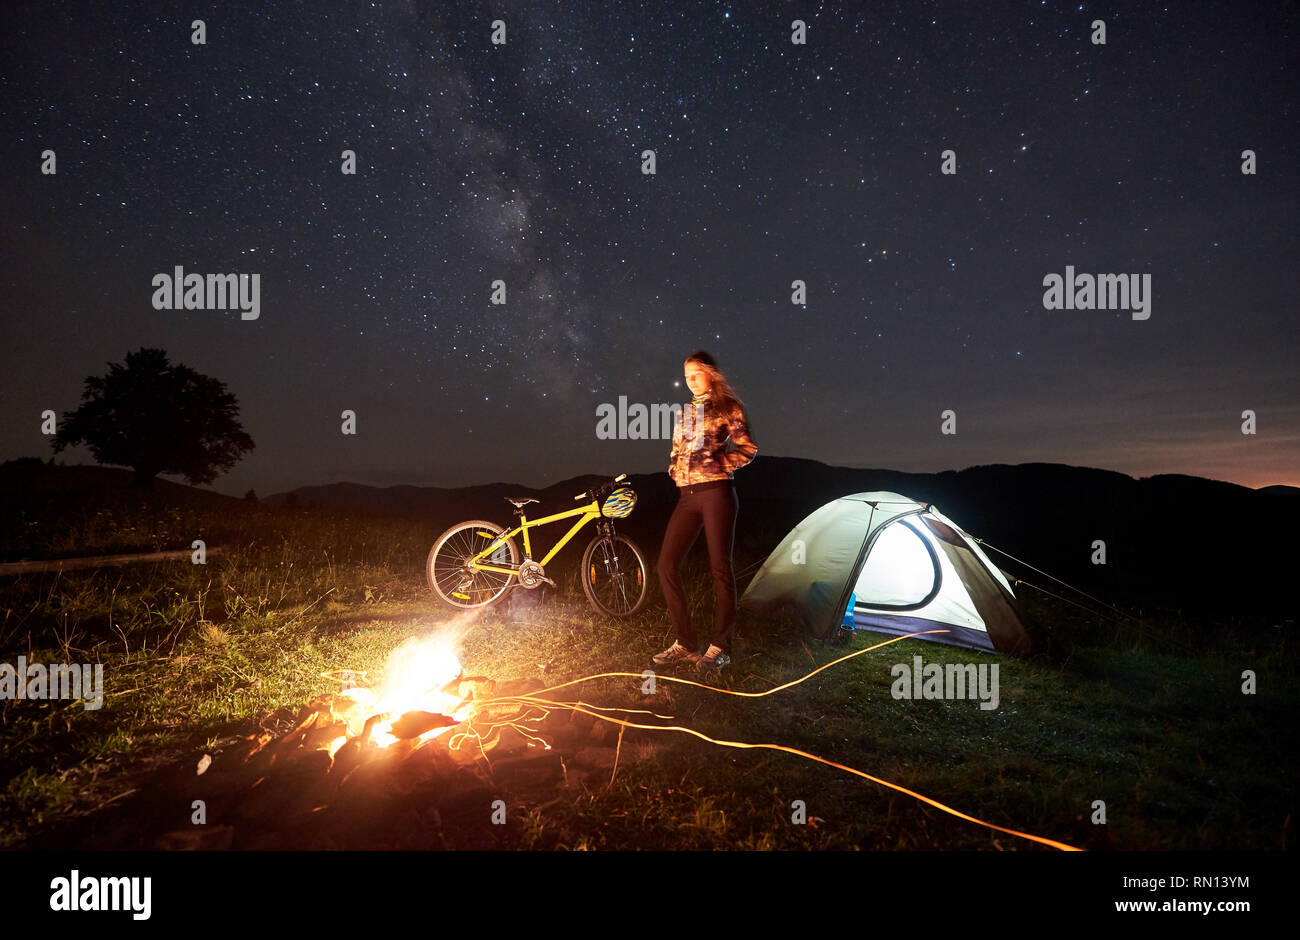 Young woman cyclist resting at night camping near burning campfire, illuminated tourist tent, mountain bike under evening sky full of stars and Milky way. Outdoor activity and tourism concept - Stock Image